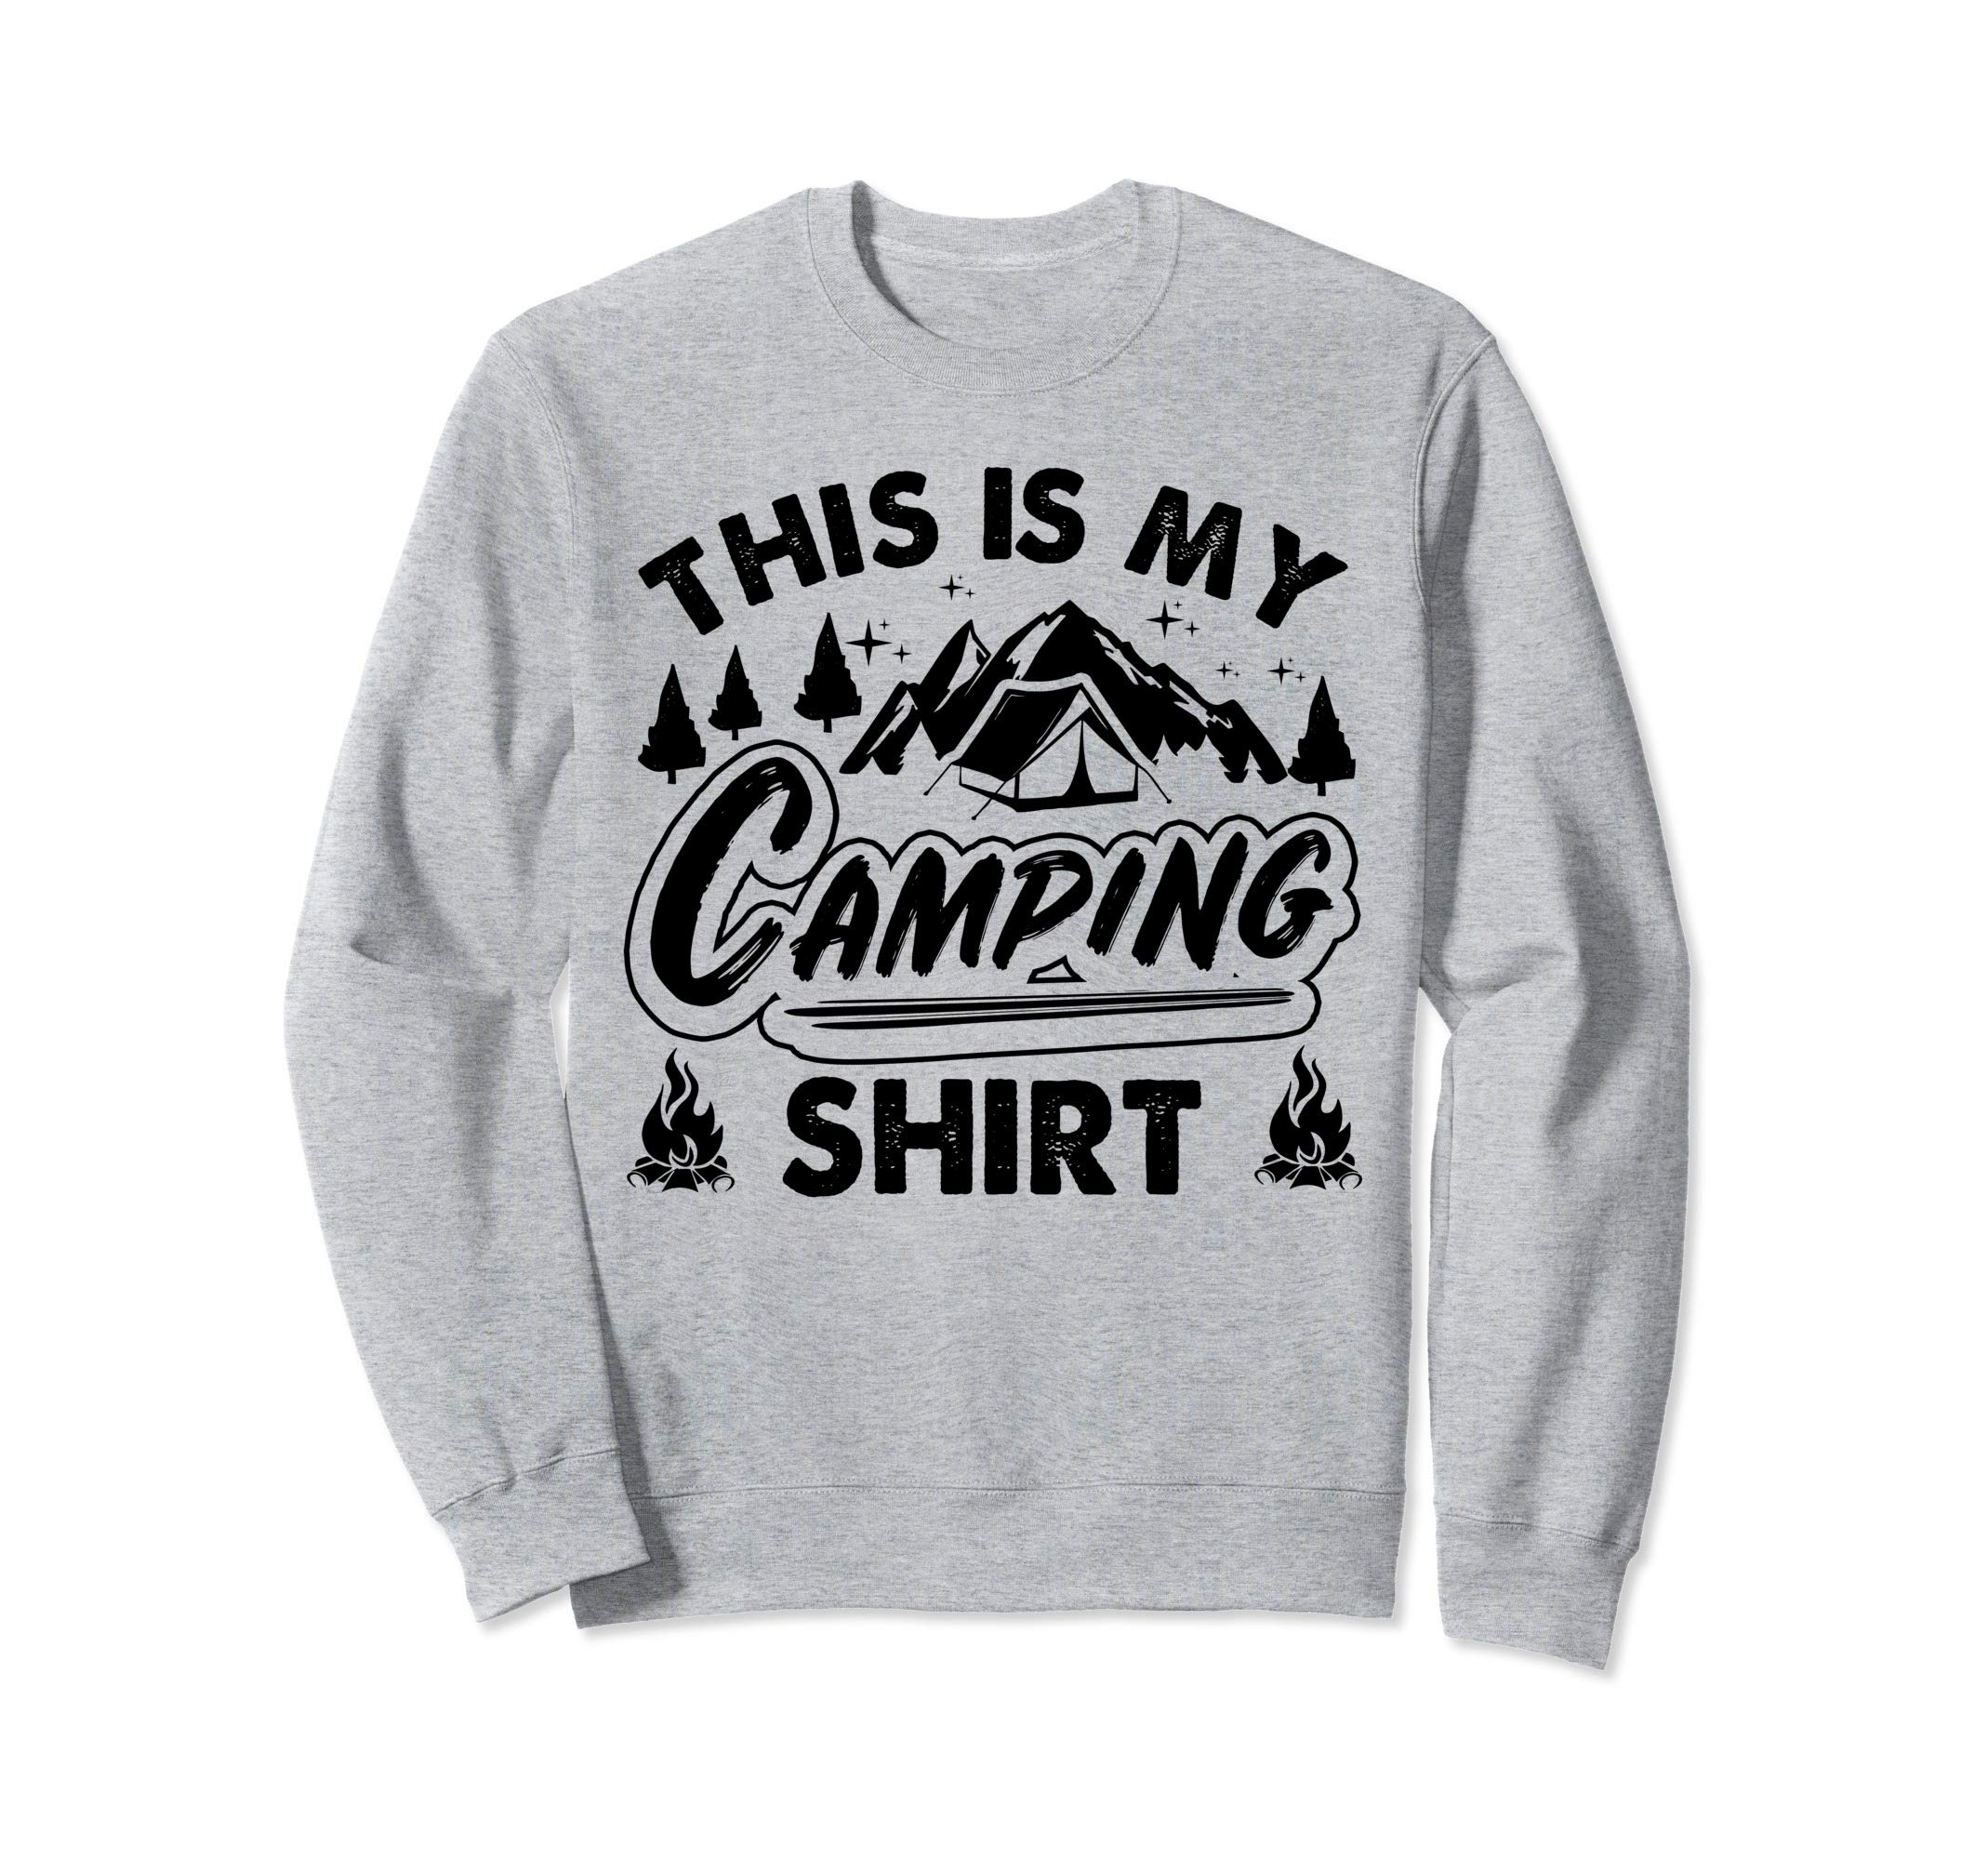 This Is My Camping Shirt Funny Camper Gift Sweatshirt by Funny Camping Gifts Tizy Apparel